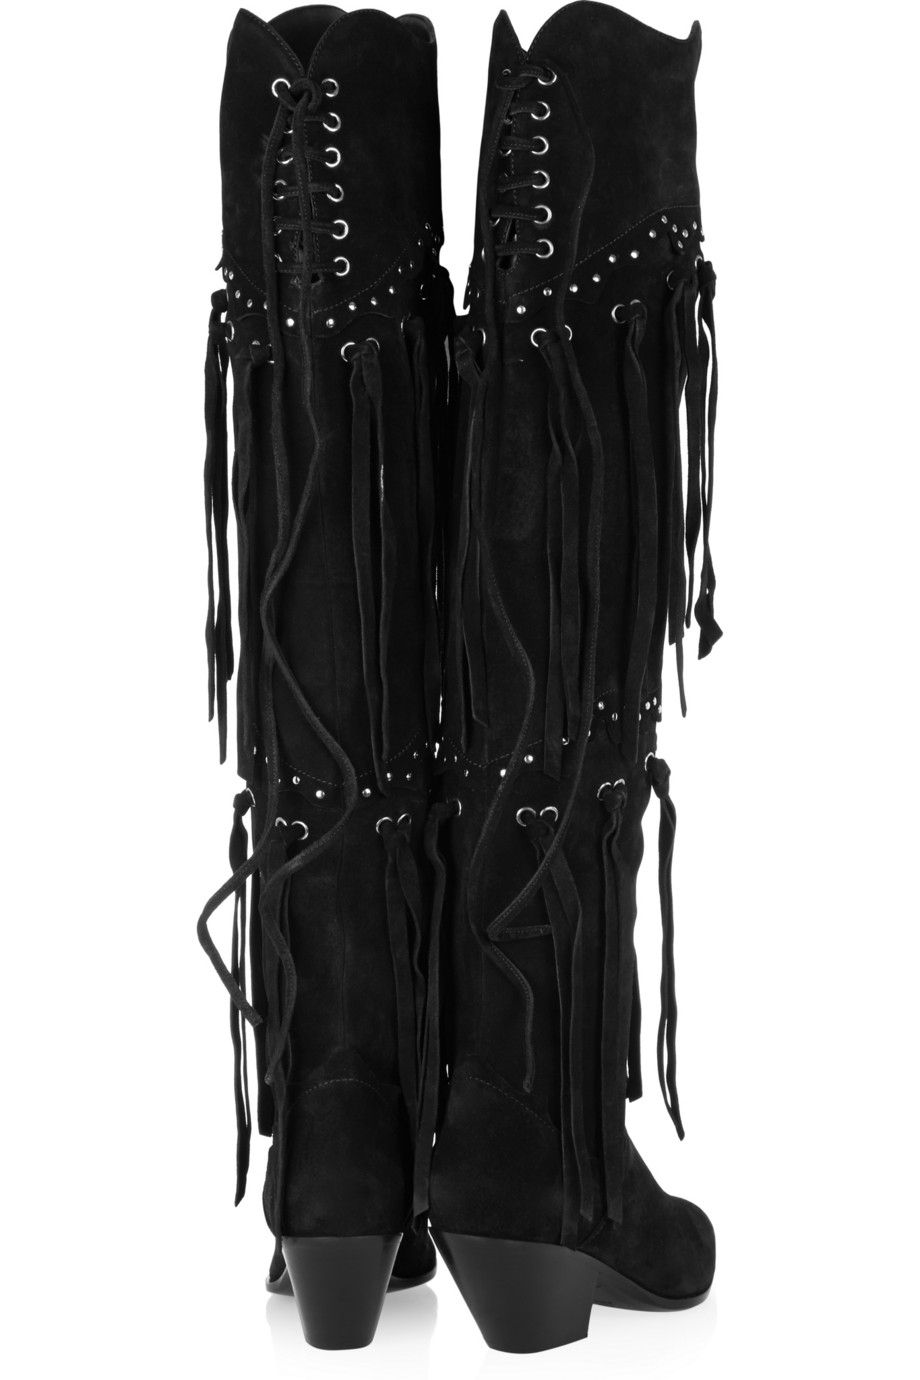 visit sale online Giuseppe Zanotti Suede Fringe Over-The-Knee Boots buy cheap for sale sQlAGXlMPo